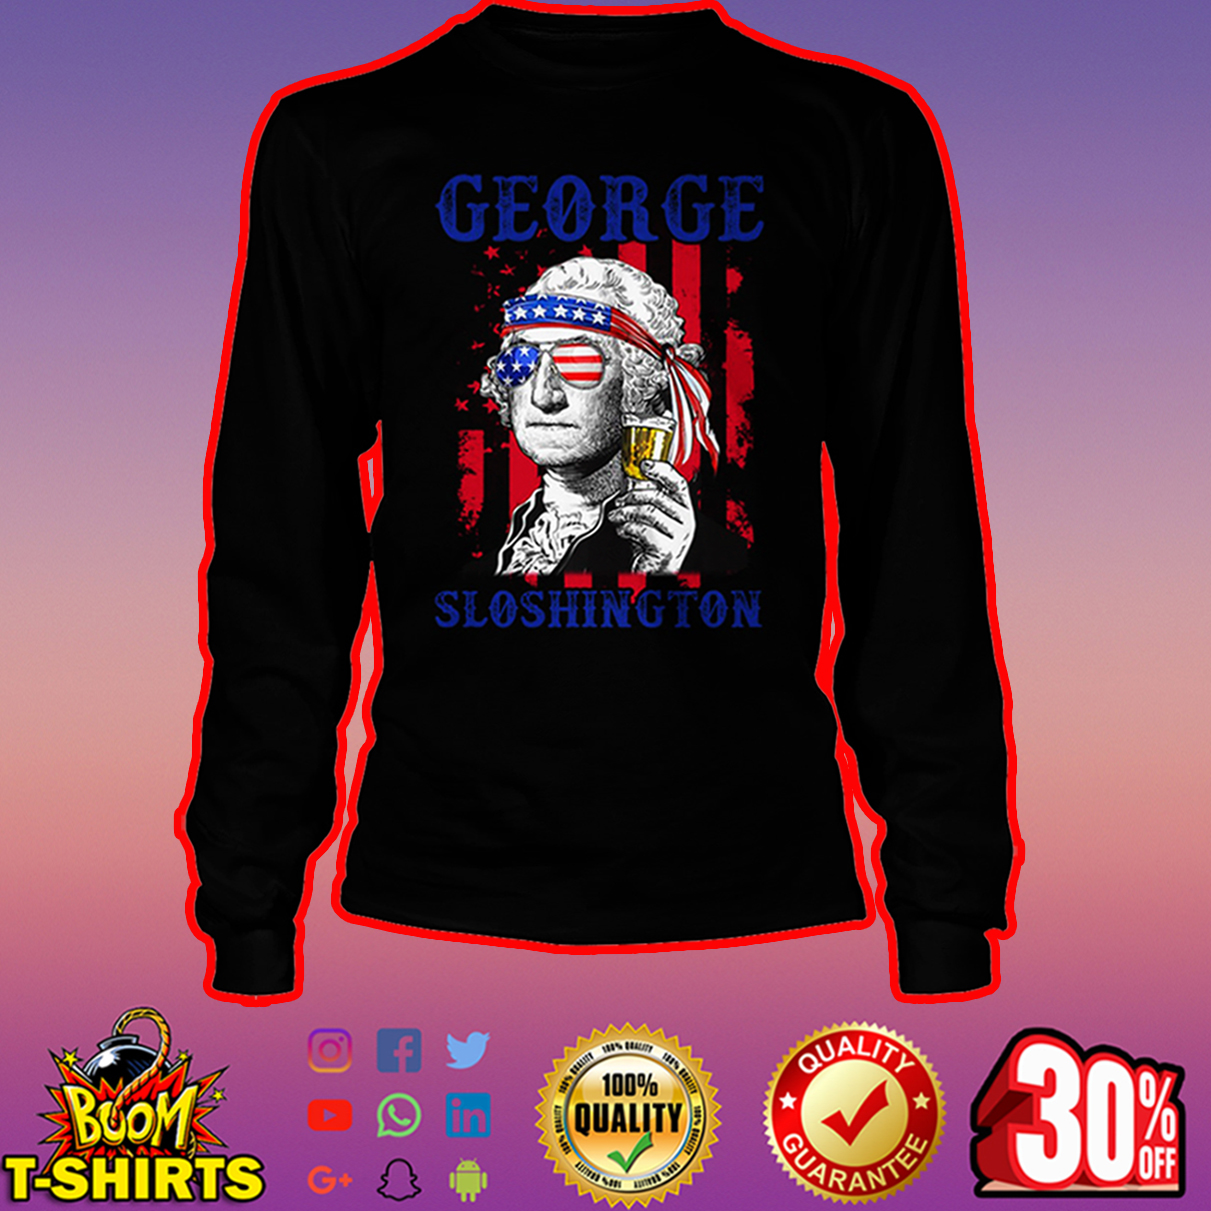 George Sloshington 4th of July long sleeve tee